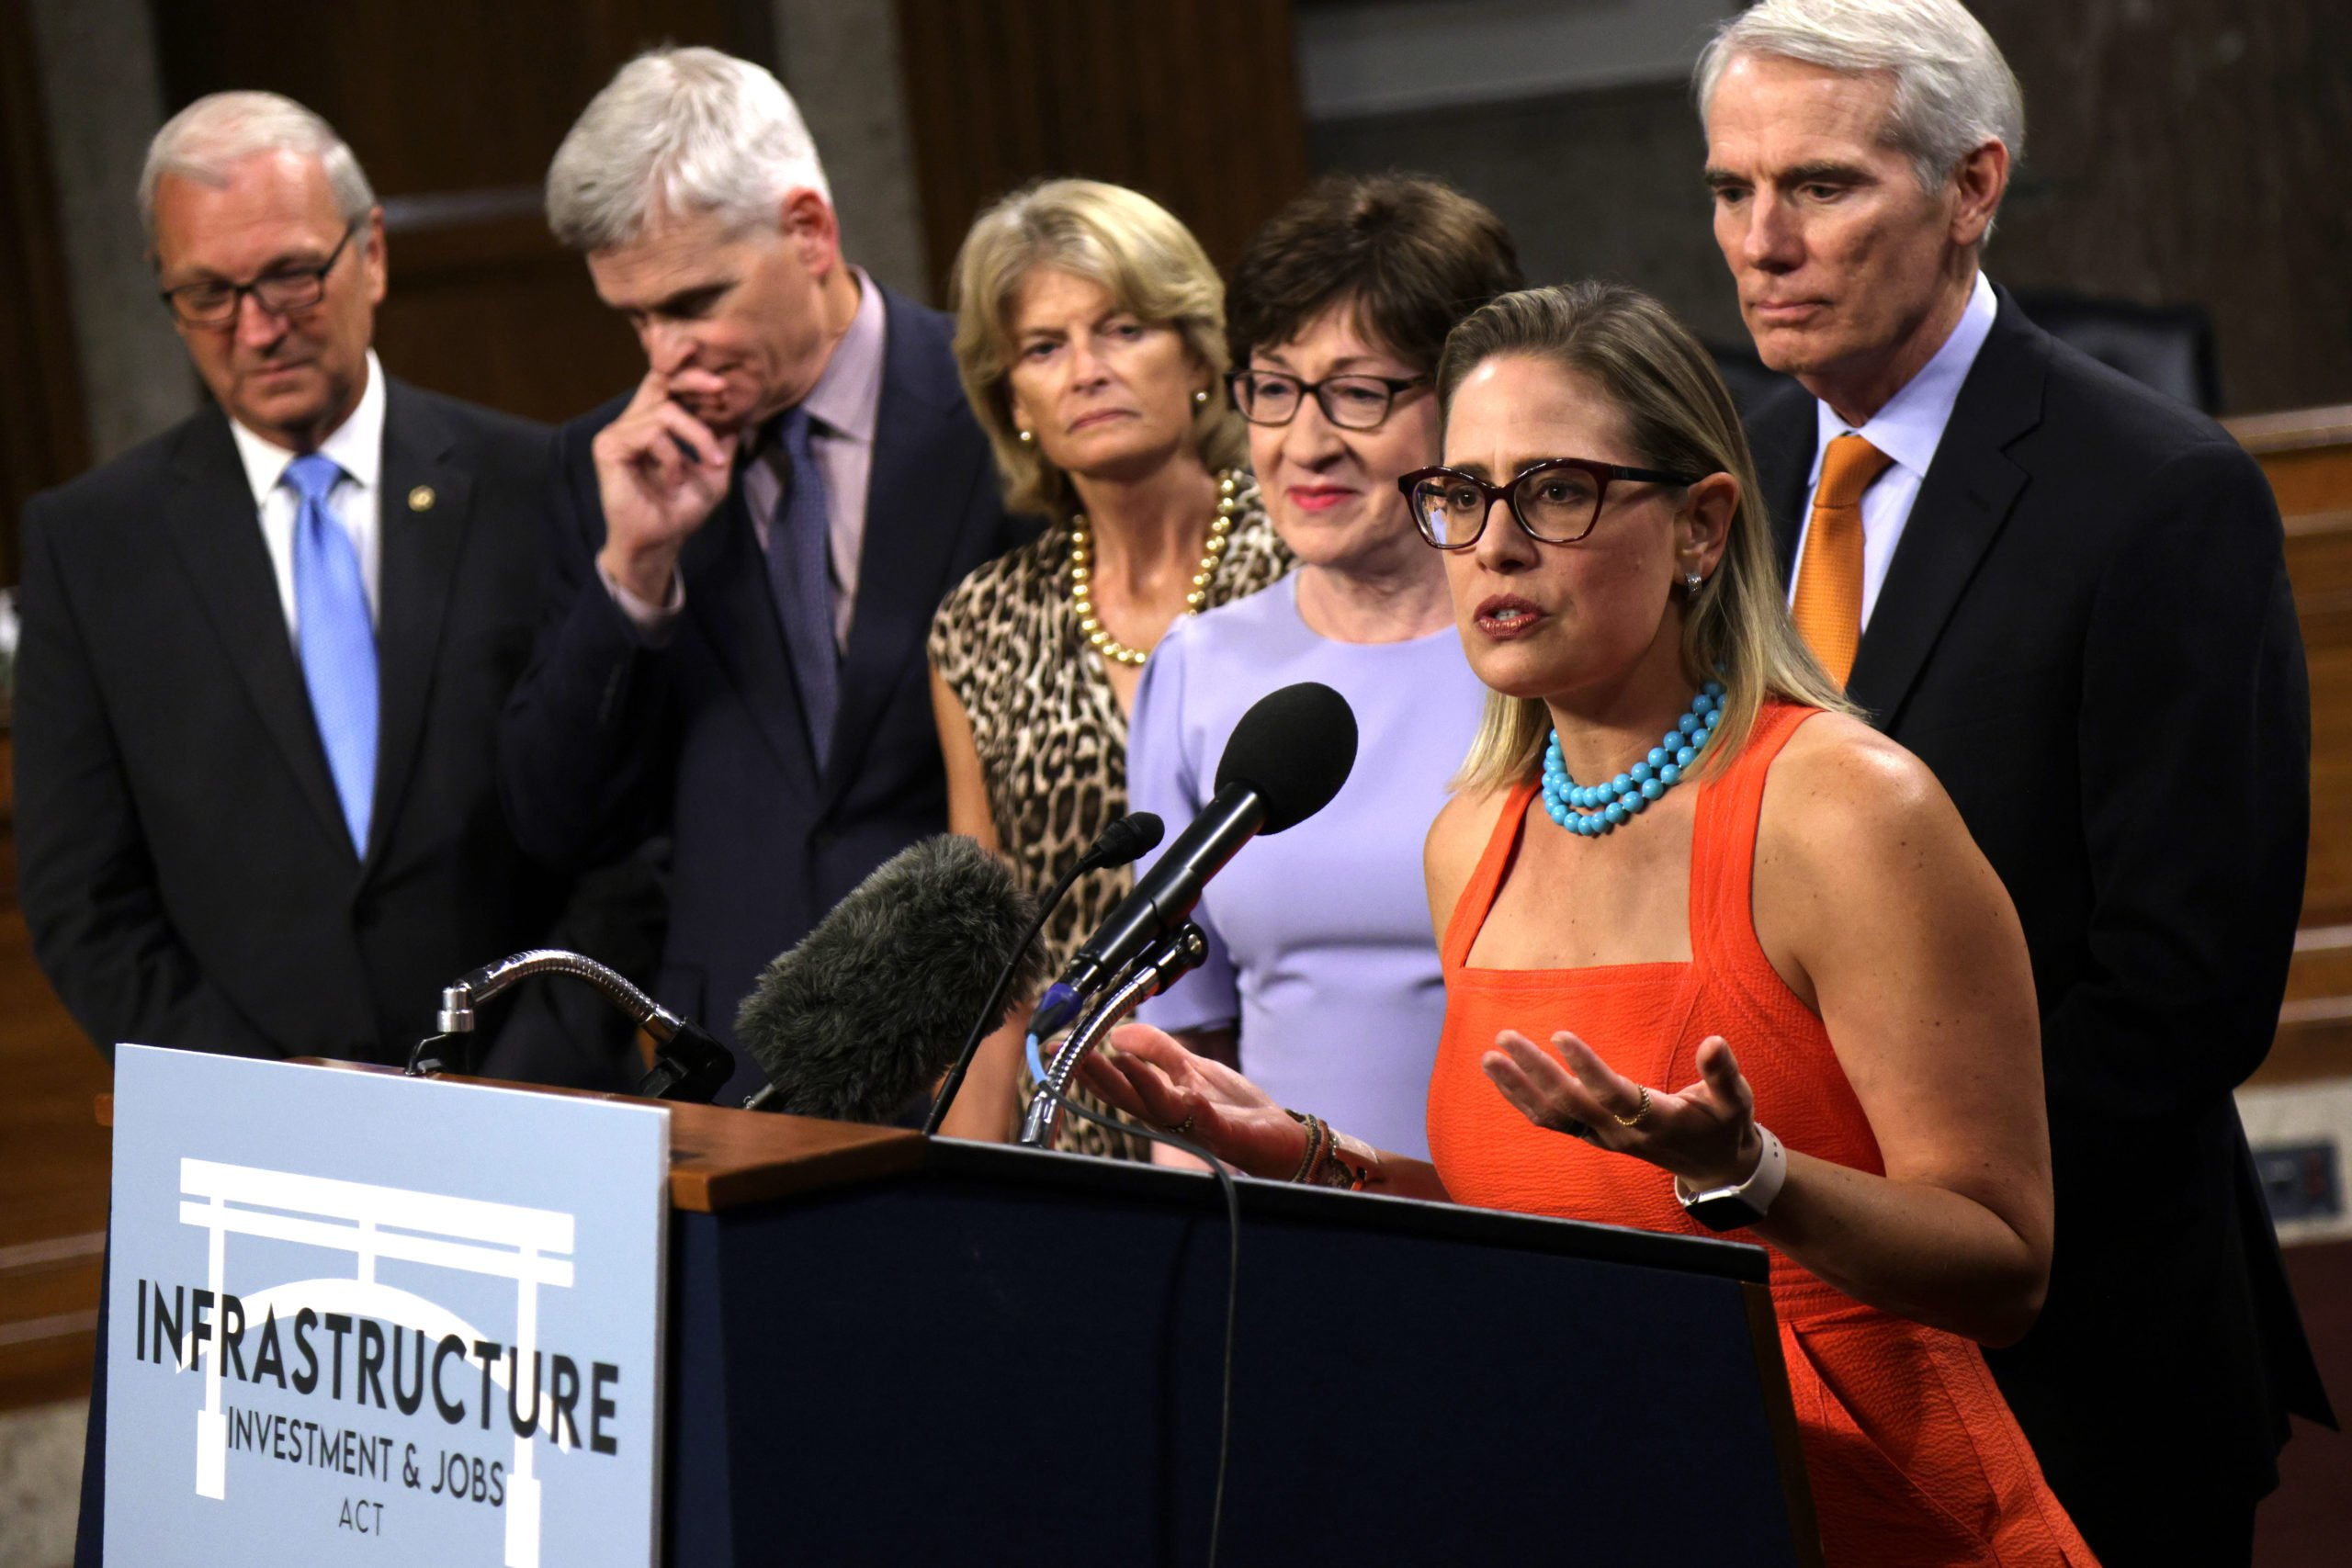 Sen. Kyrsten Sinema speaks after the bipartisan bill cleared its first procedural vote in July. (Alex Wong/Getty Images)